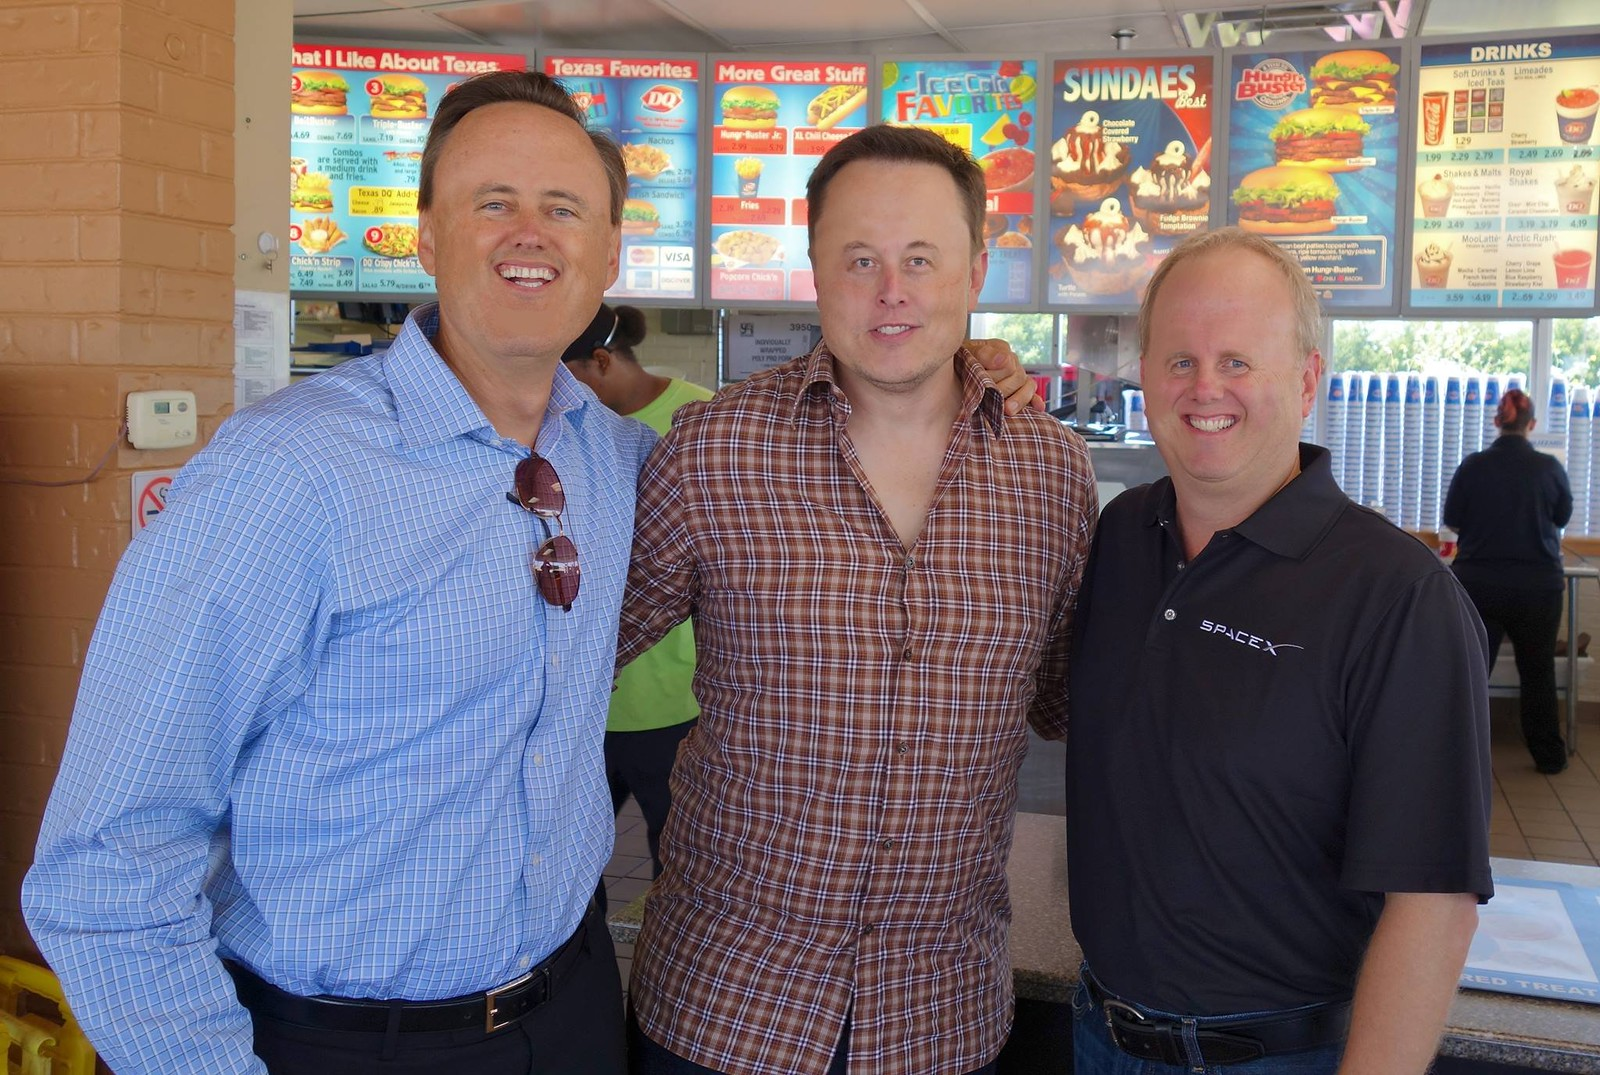 A Reddit excursion into the DQ bingers with Elon Musk in Texas | by jurvetson